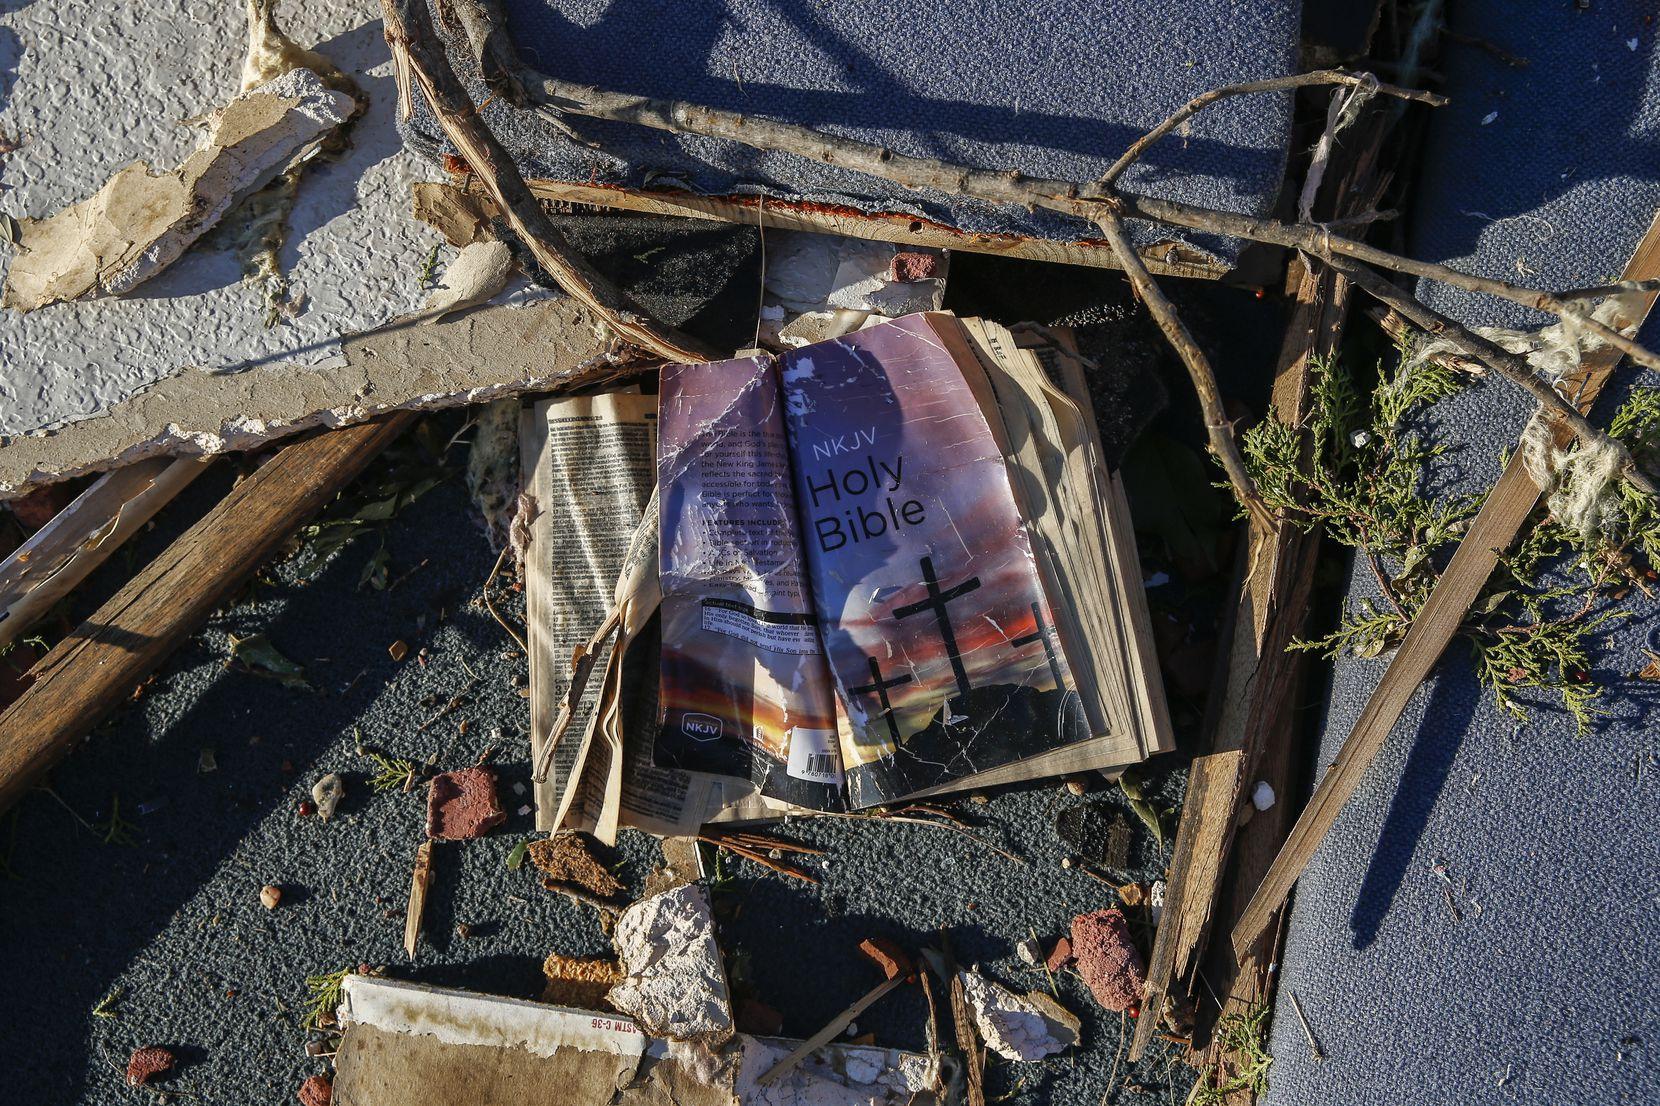 A bible is seen amongst the rubble at Primera Iglesia Bautista Mexicana church just off of Walnut Hill Lane in Dallas, on Monday, Oct. 21, 2019 after a tornado hit the night before.